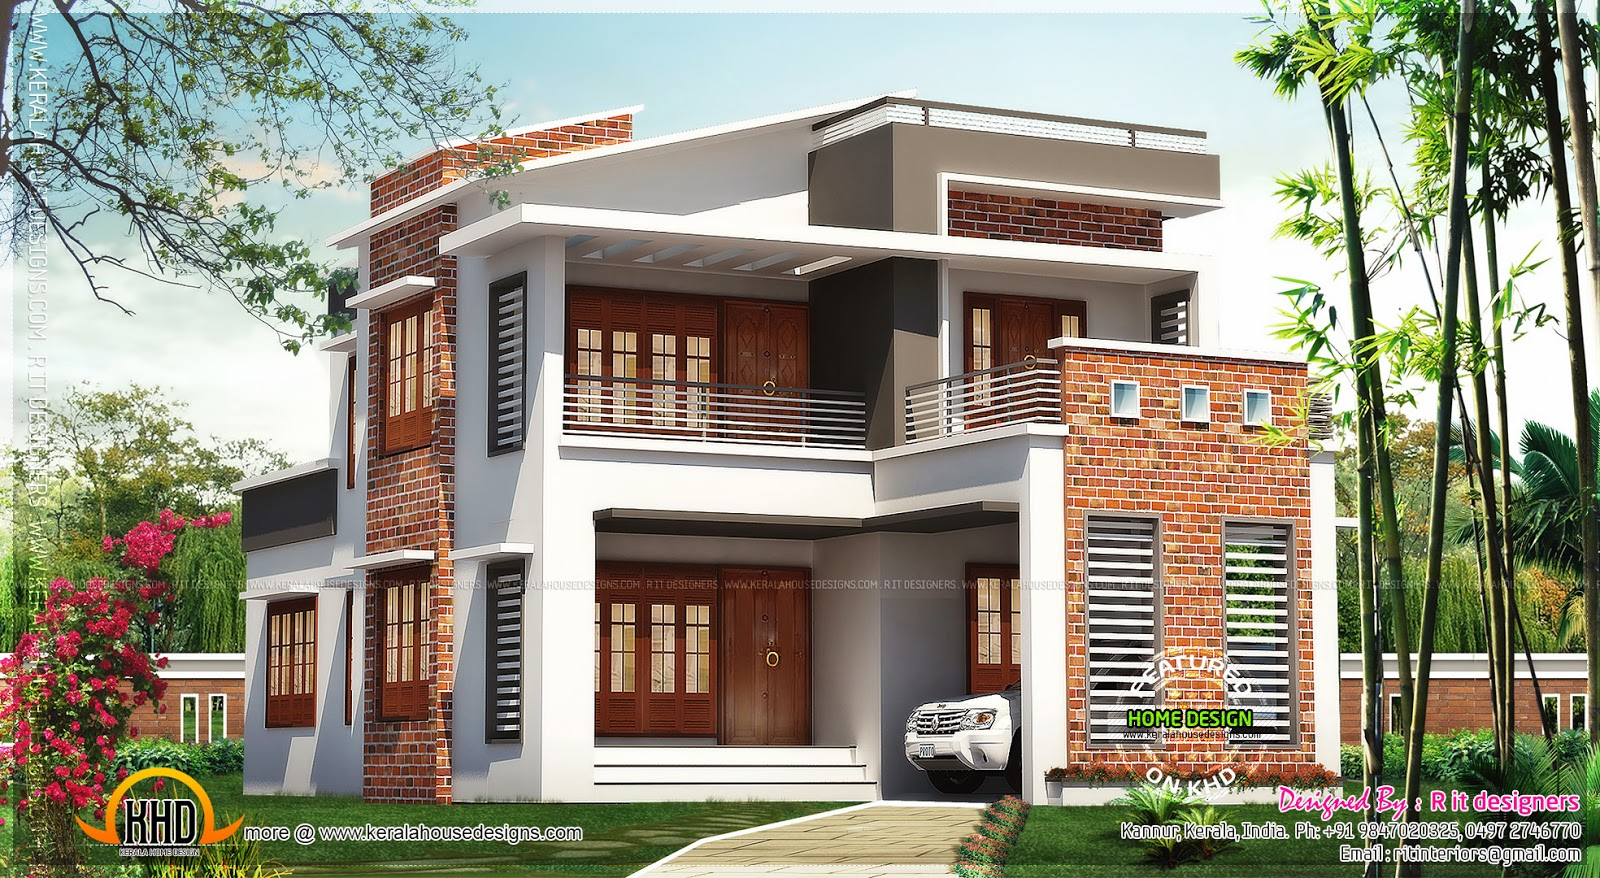 Brick mix house exterior design kerala home design and for One level house exterior design